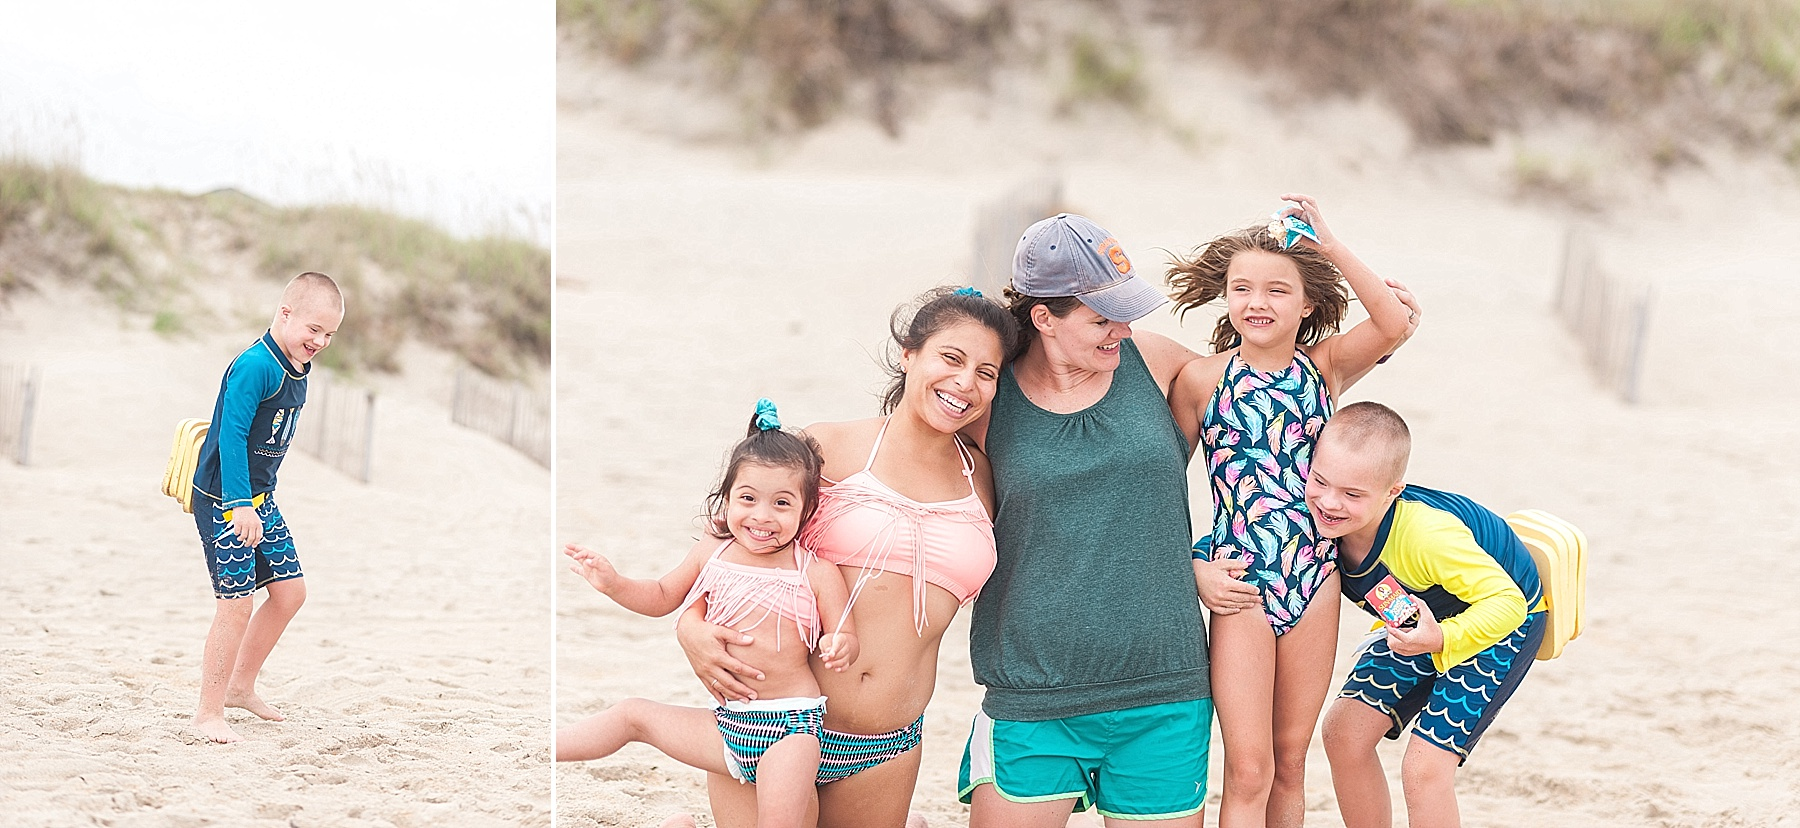 Wendy Zook Photography_Outer Banks Family vacation, Outer Banks, beach time, family vacation, NC beach vacation, Friendship by Lilly Zach